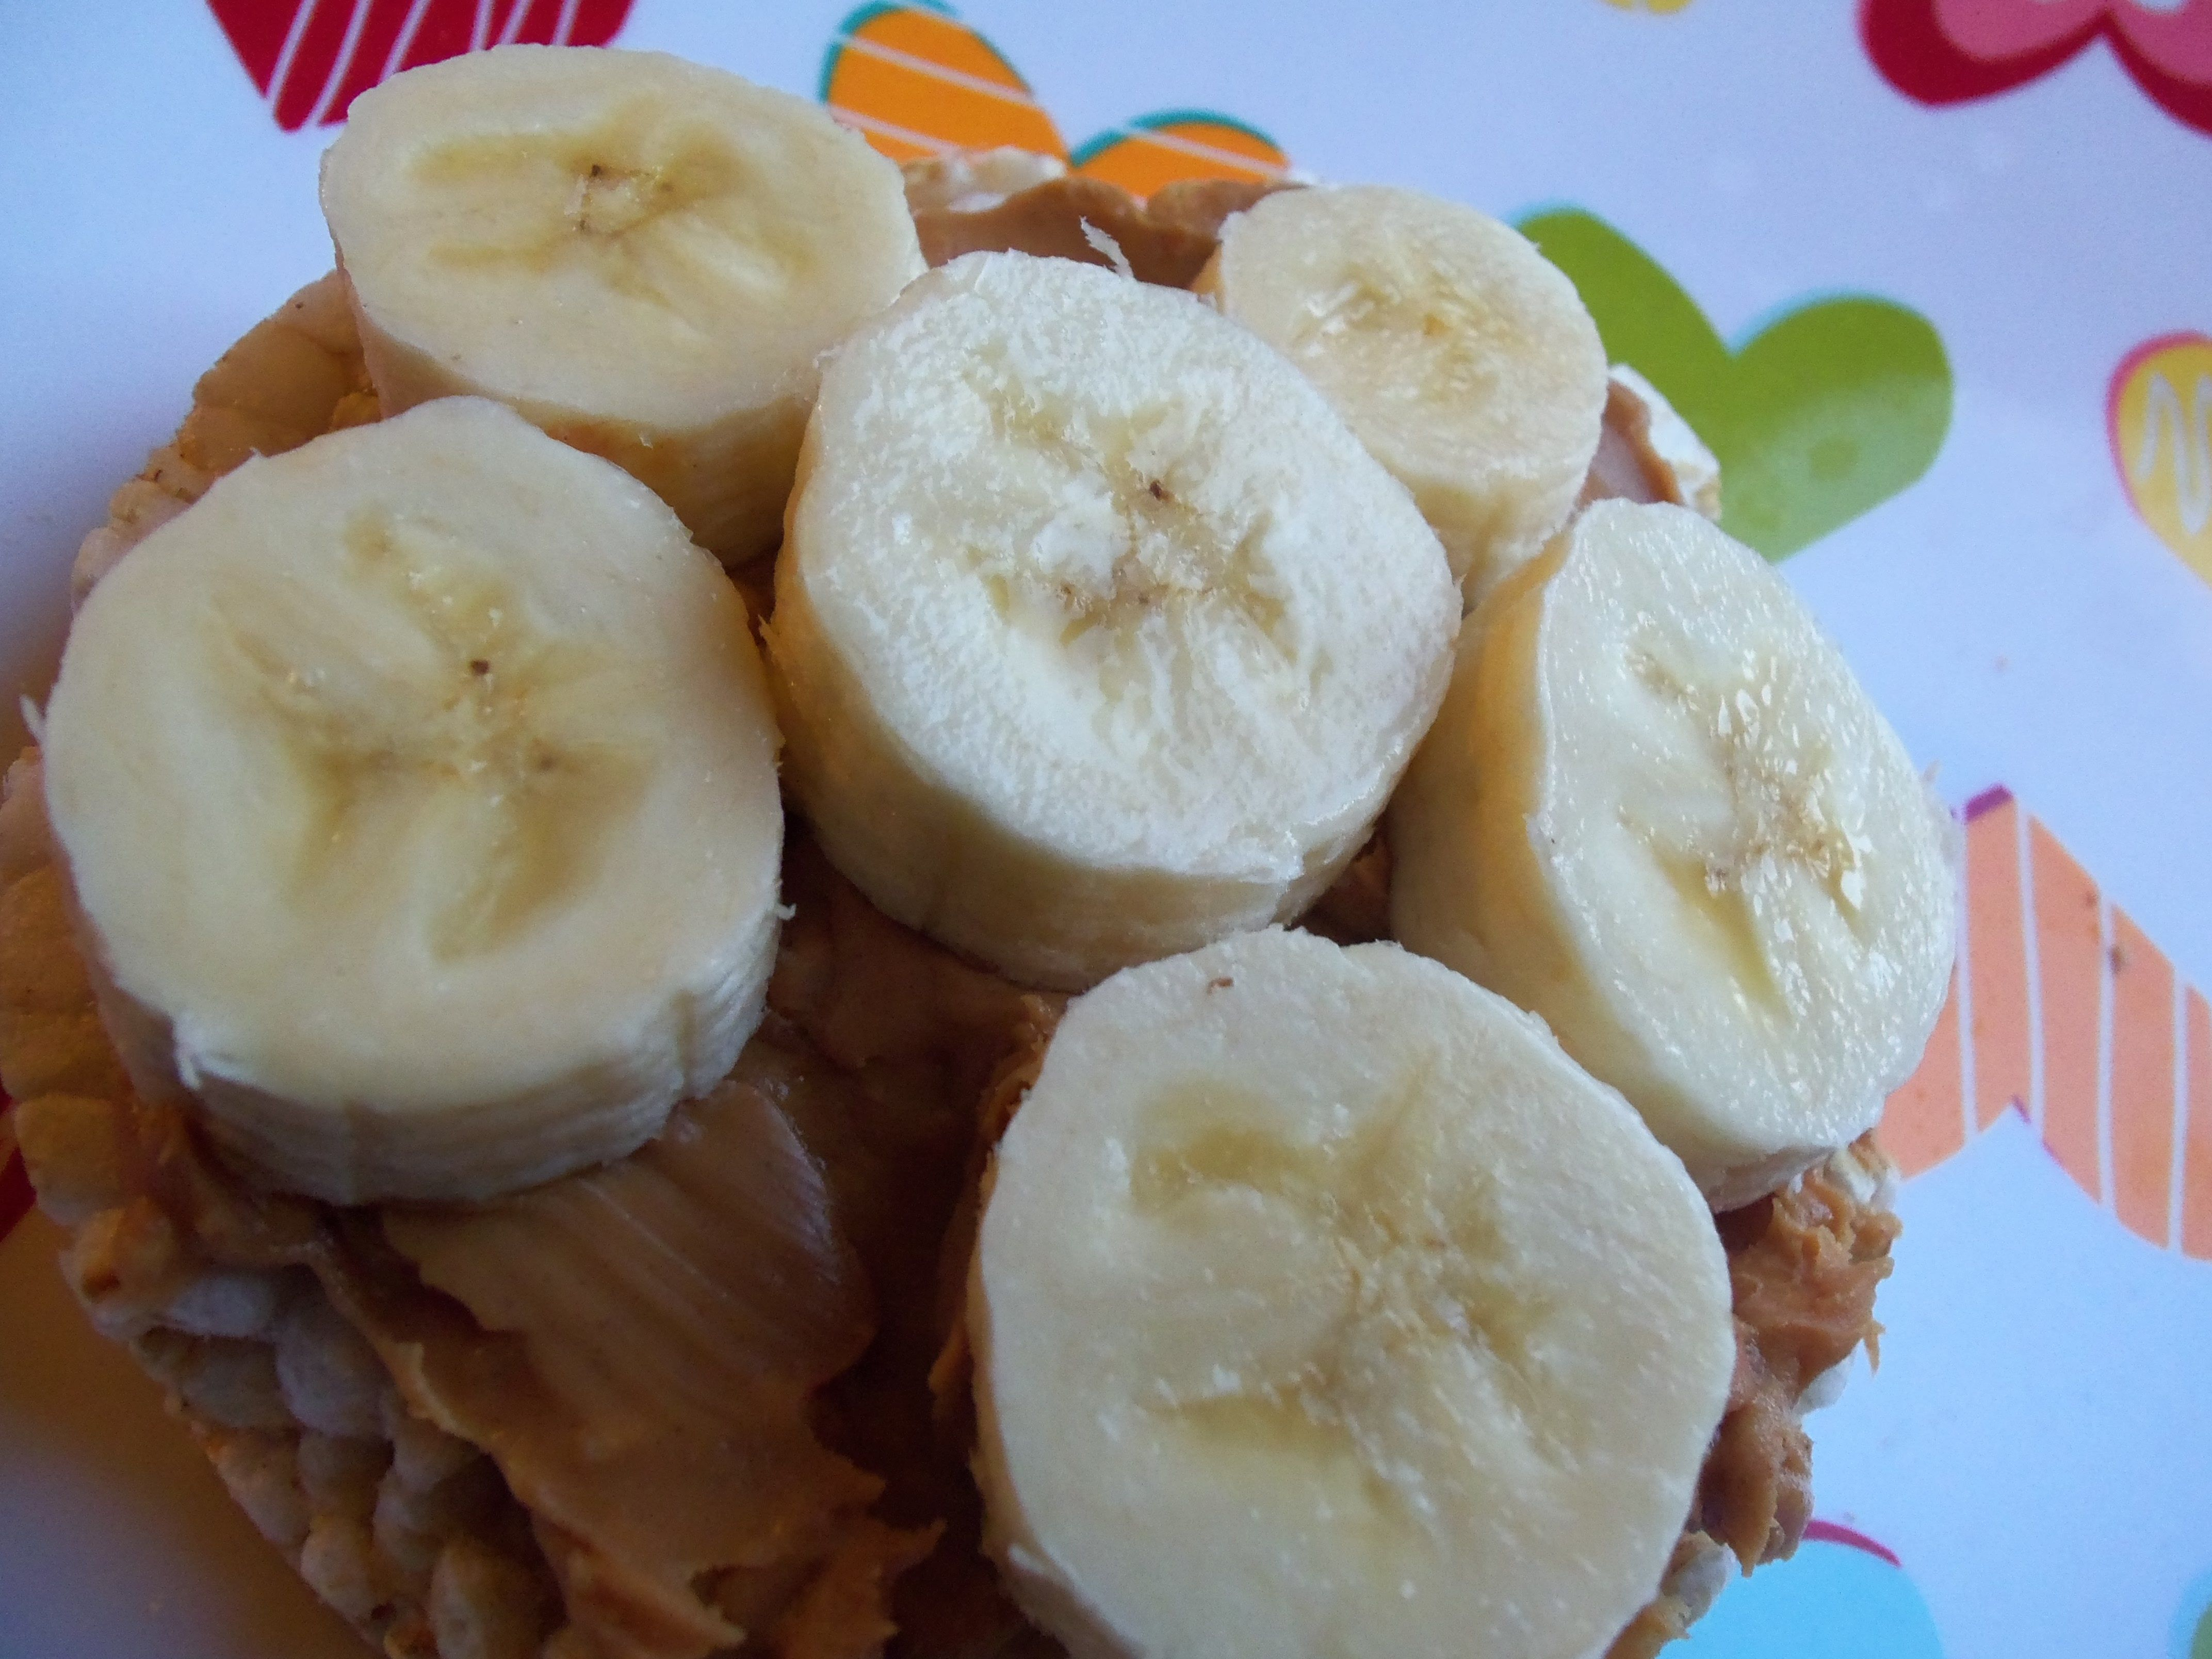 Healthy snack brown rice cake with peanut butter and